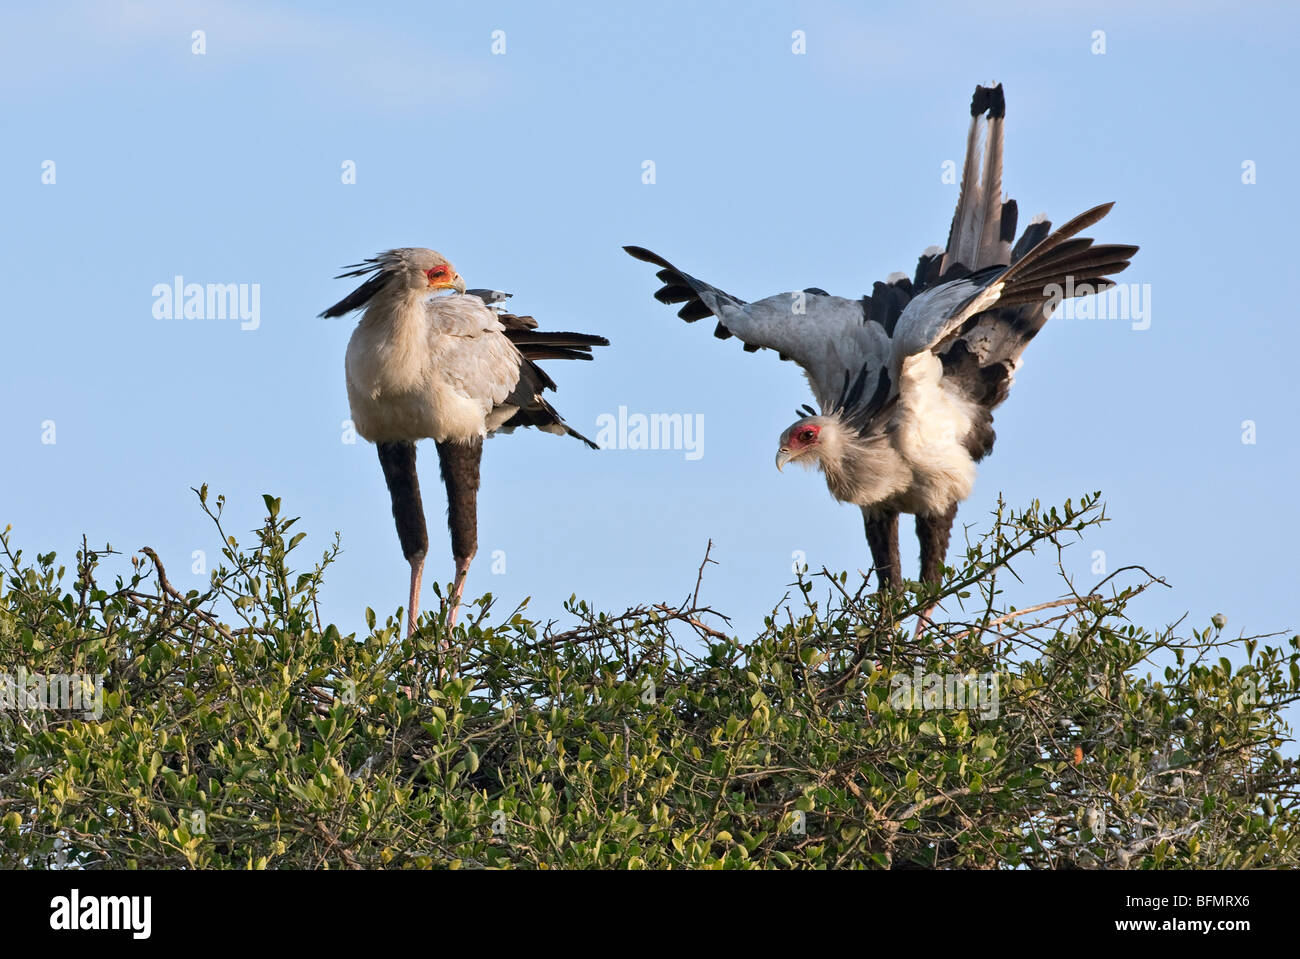 Kenya. A pair of nesting secretary birds in Masai Mara National Reserve. - Stock Image